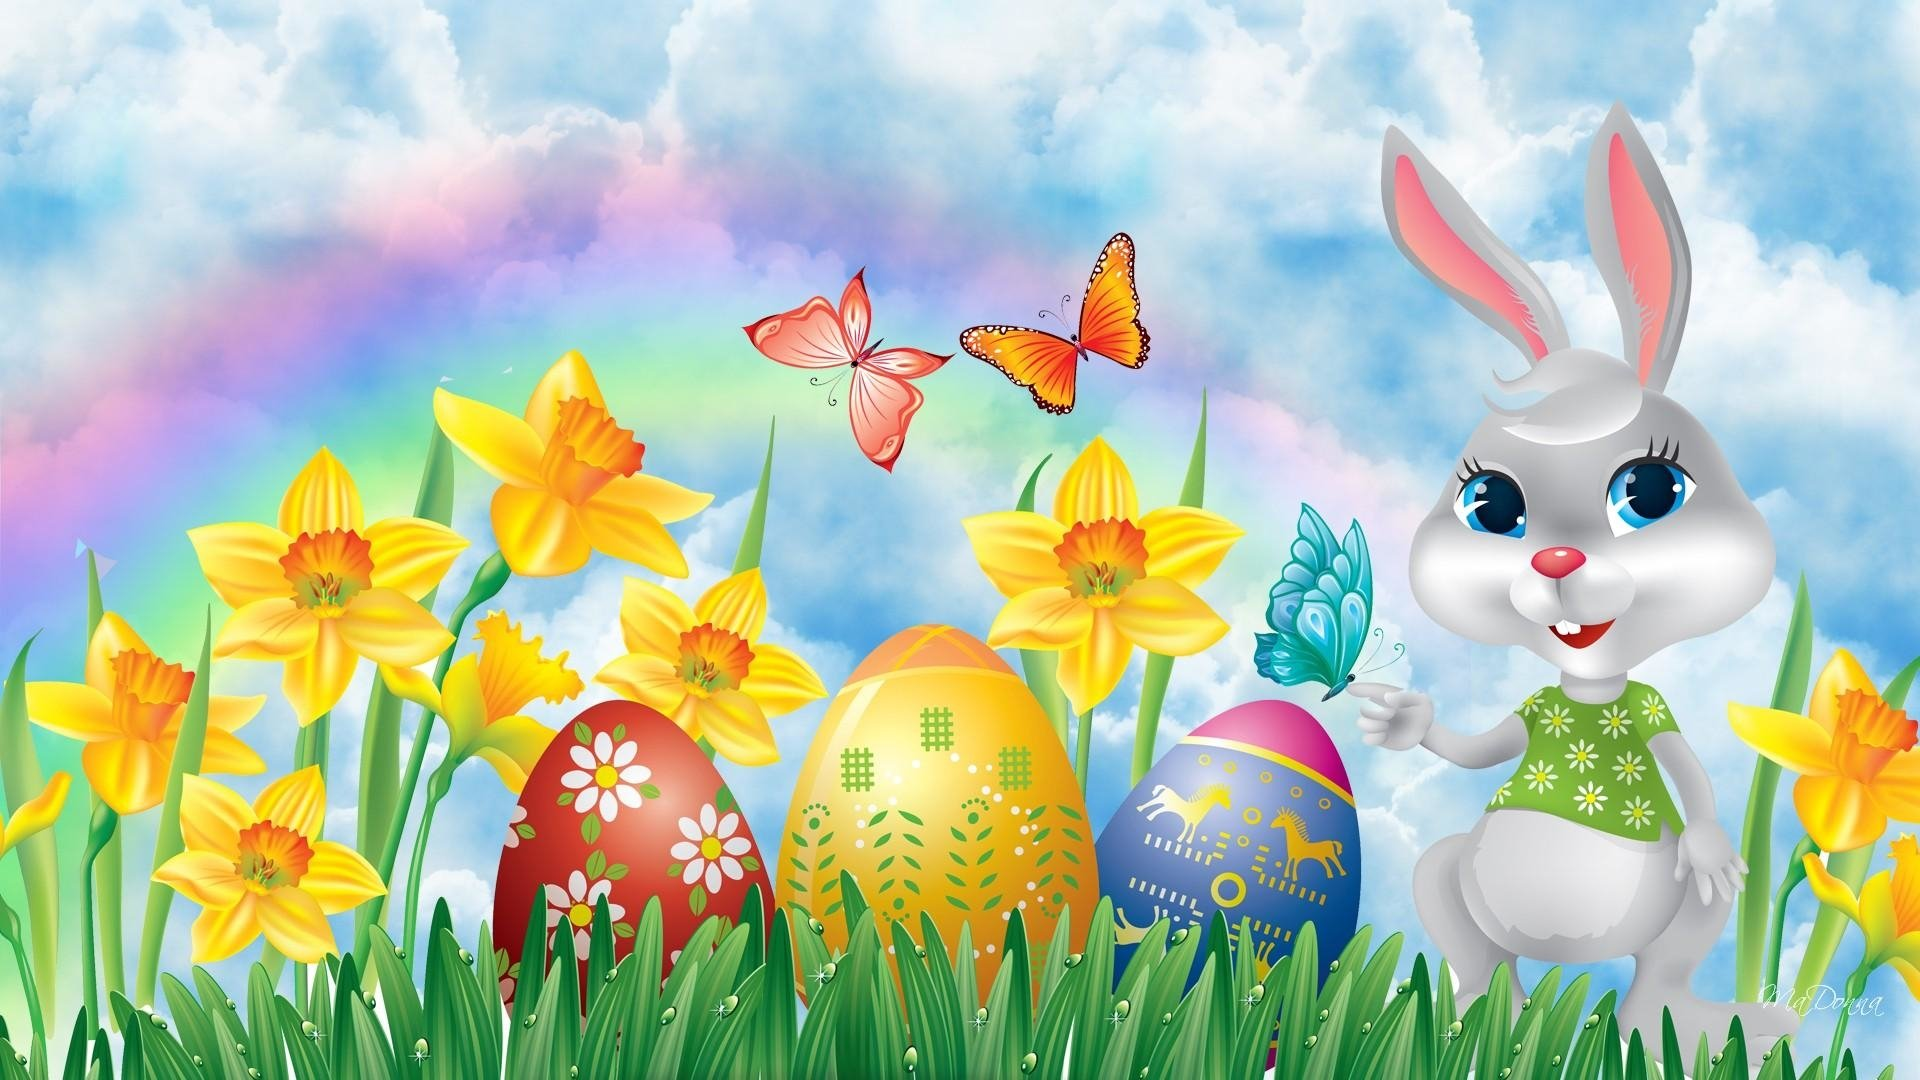 Easter bunny easter eggs and daffodils hd wallpaper - Easter bunny wallpaper ...